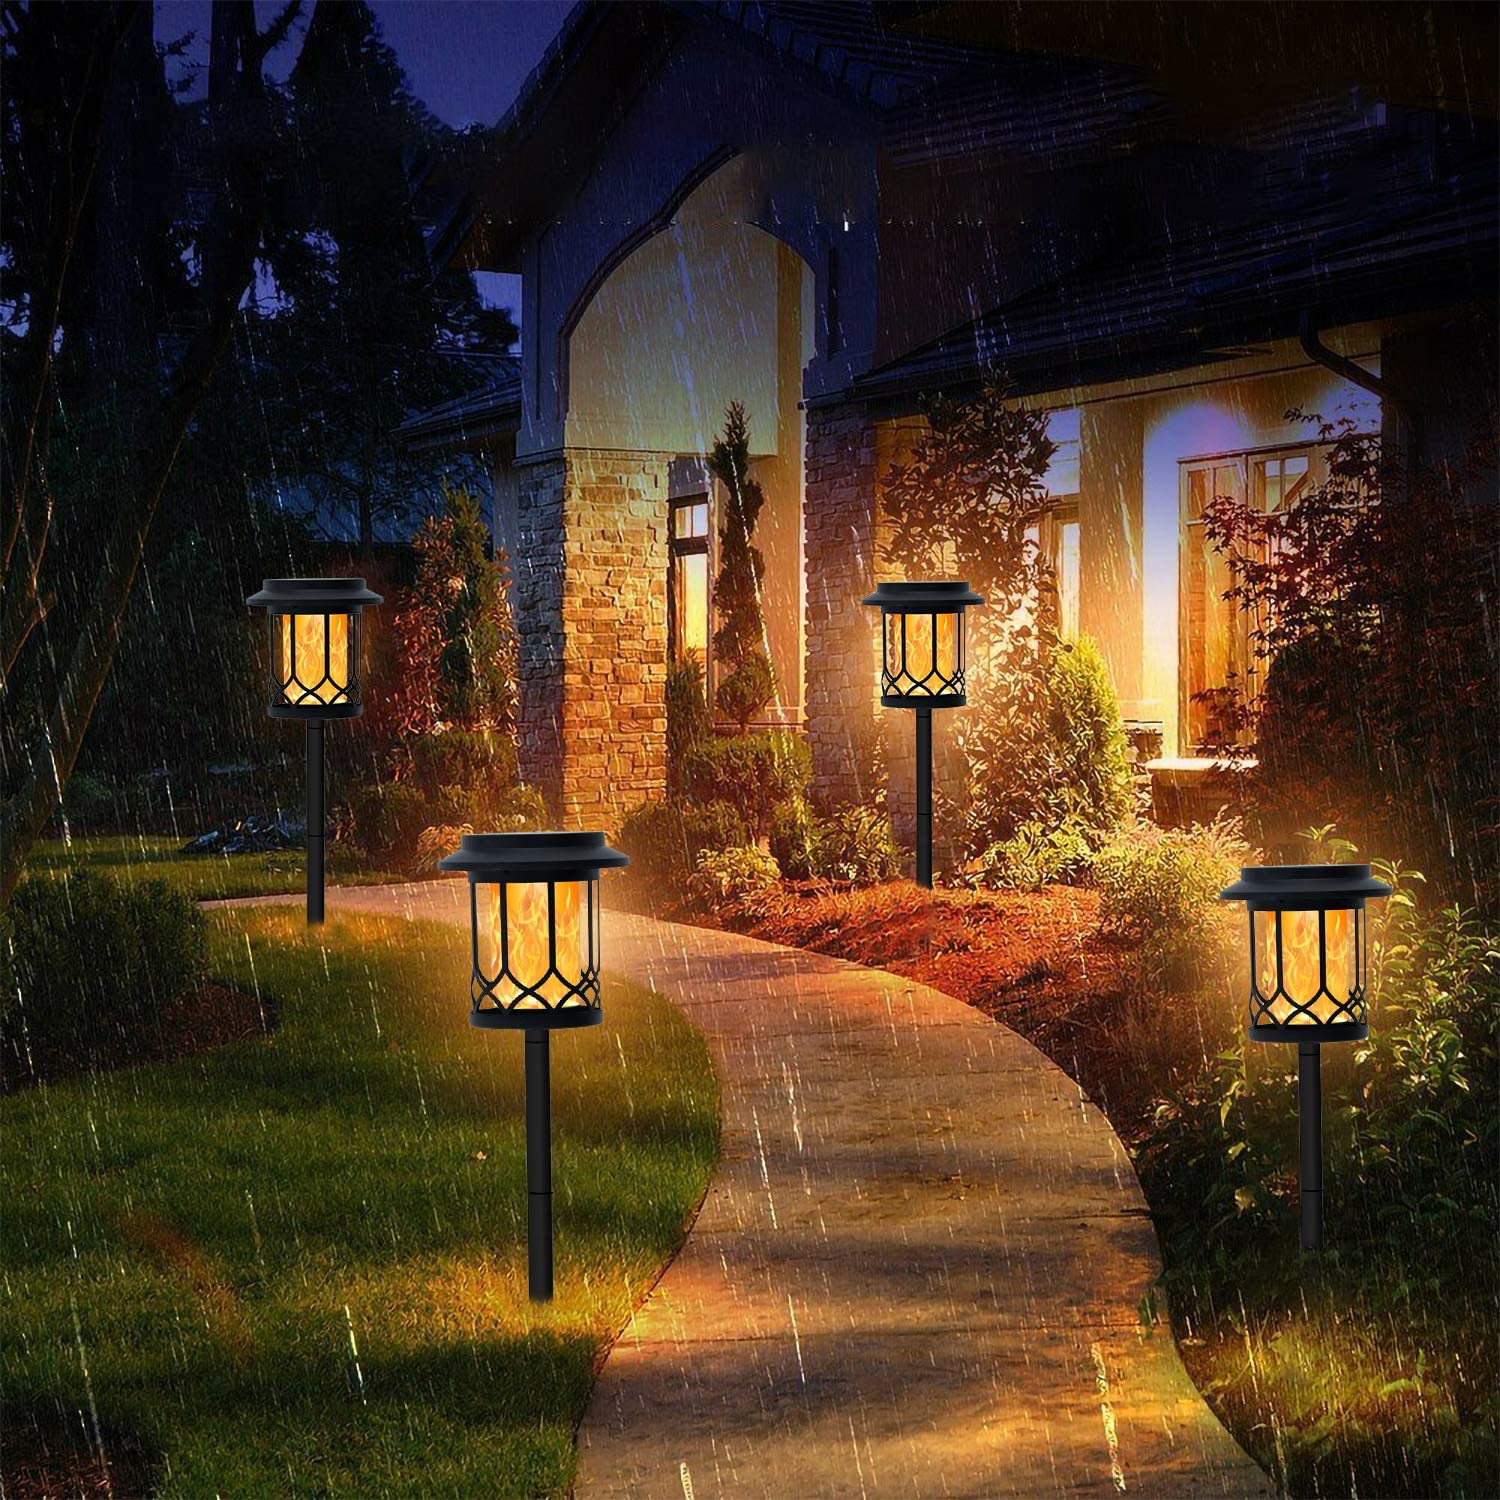 Dual-use Decorative Lamp with Dancing Flames Torches CHARMELEON Solar Flame Torch Lights Outdoor Garden Patio Decorations Lighting 4 Pack